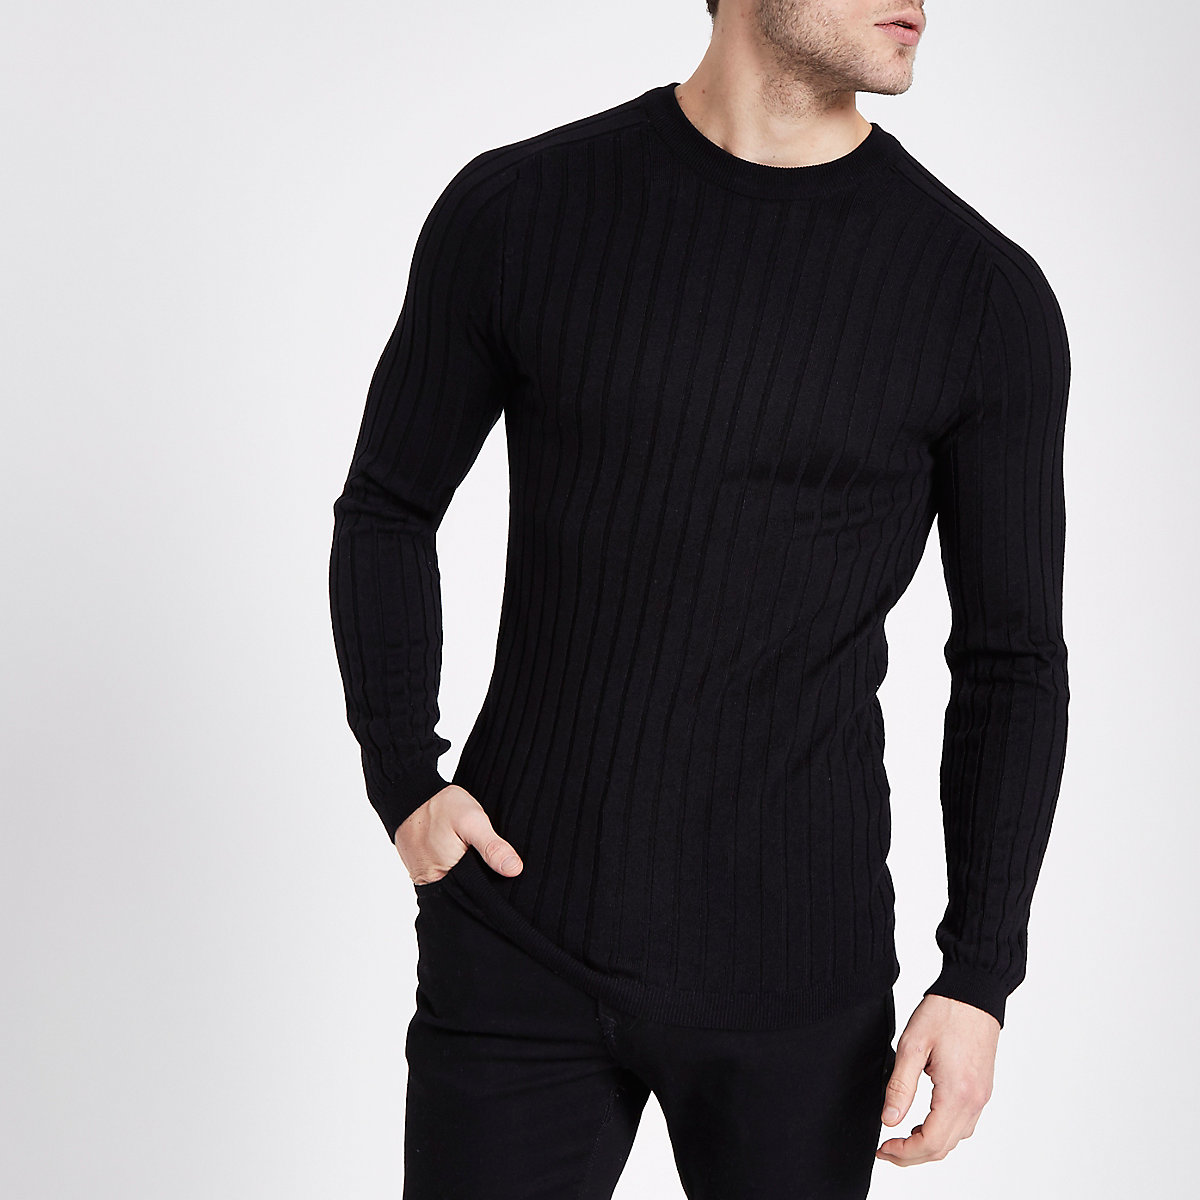 Black muscle fit ribbed crew neck sweater